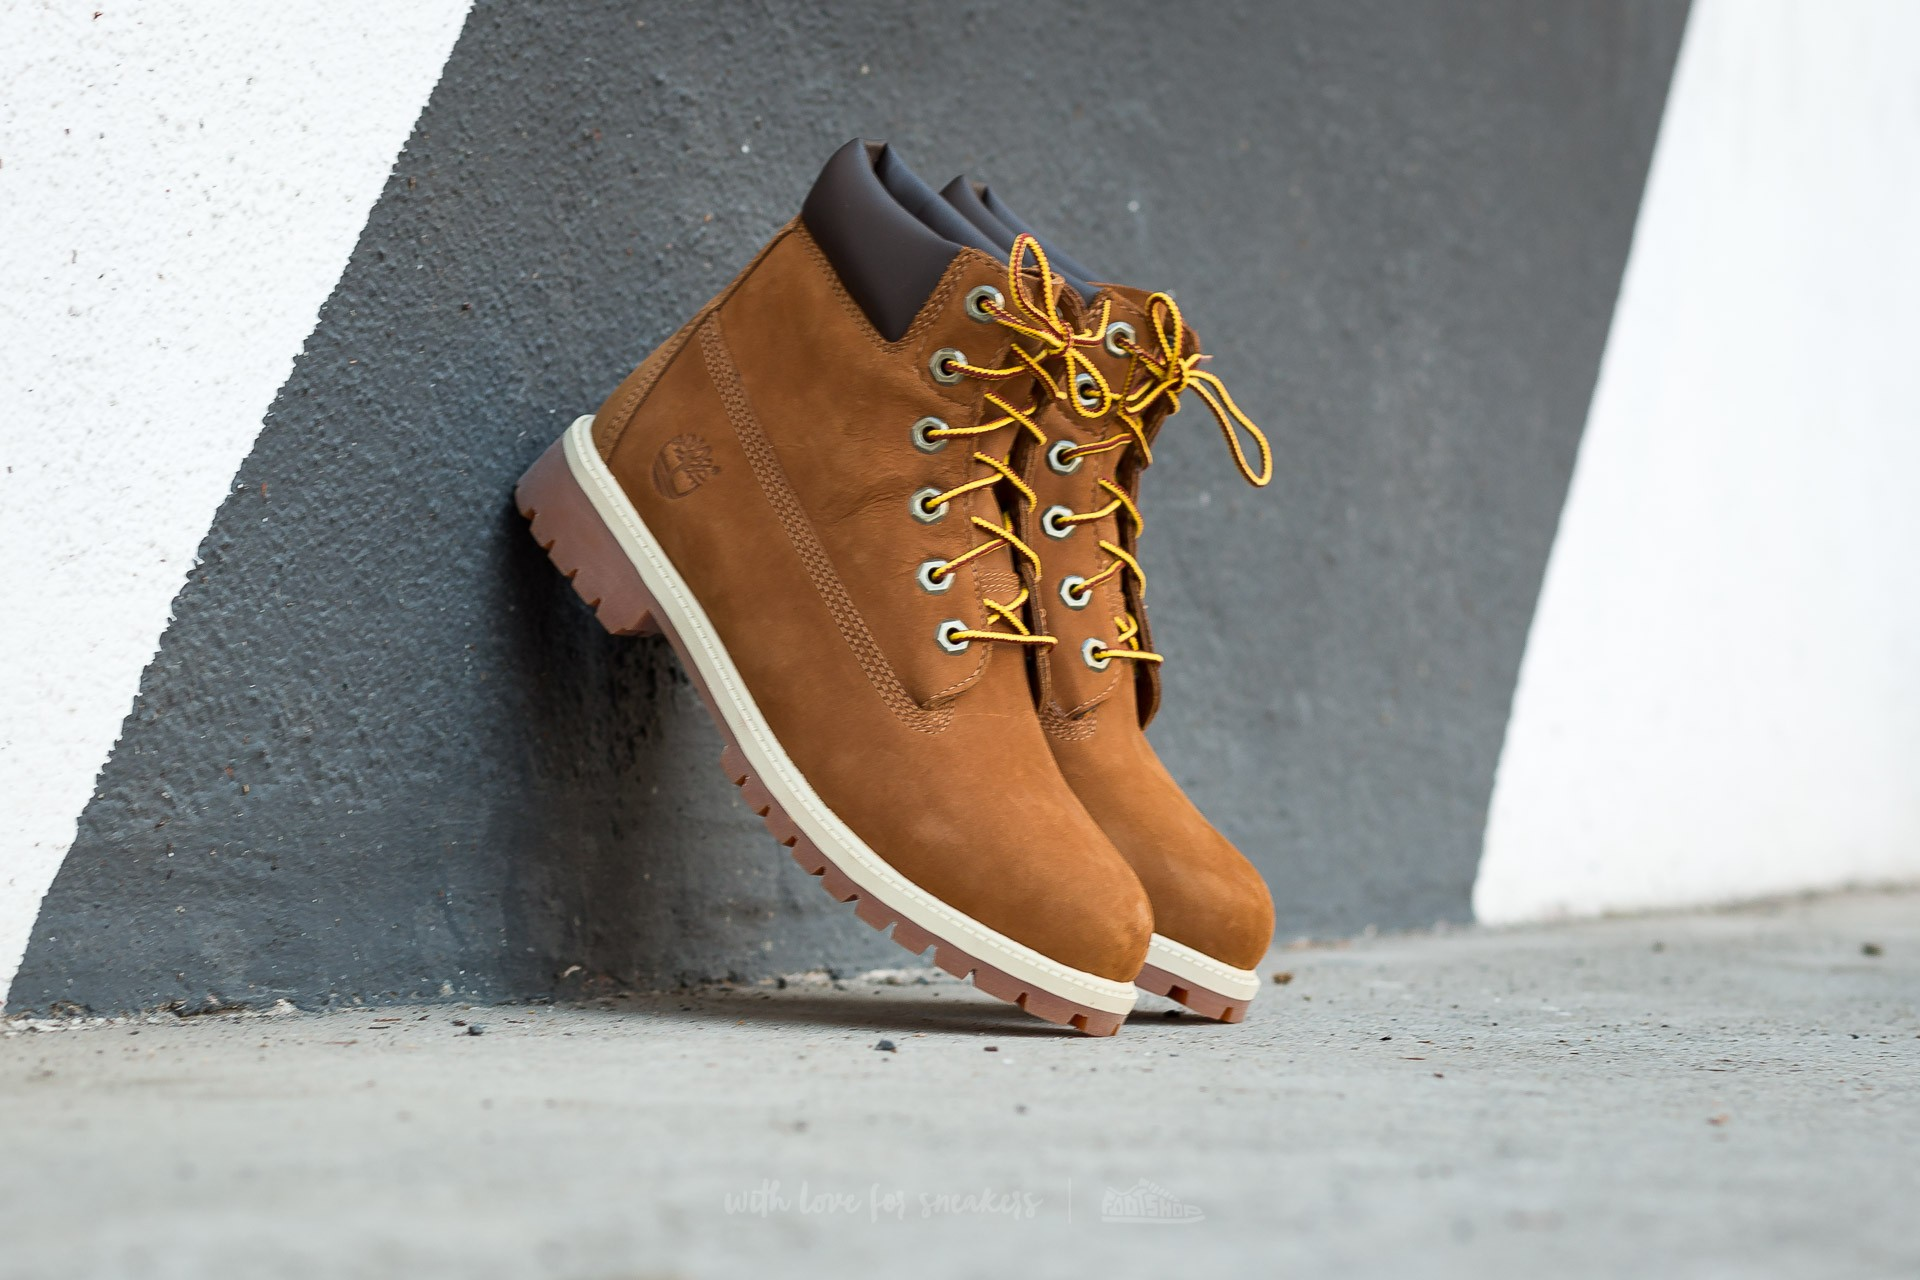 Timberland 6 in Premium Rust Nubuk Brown